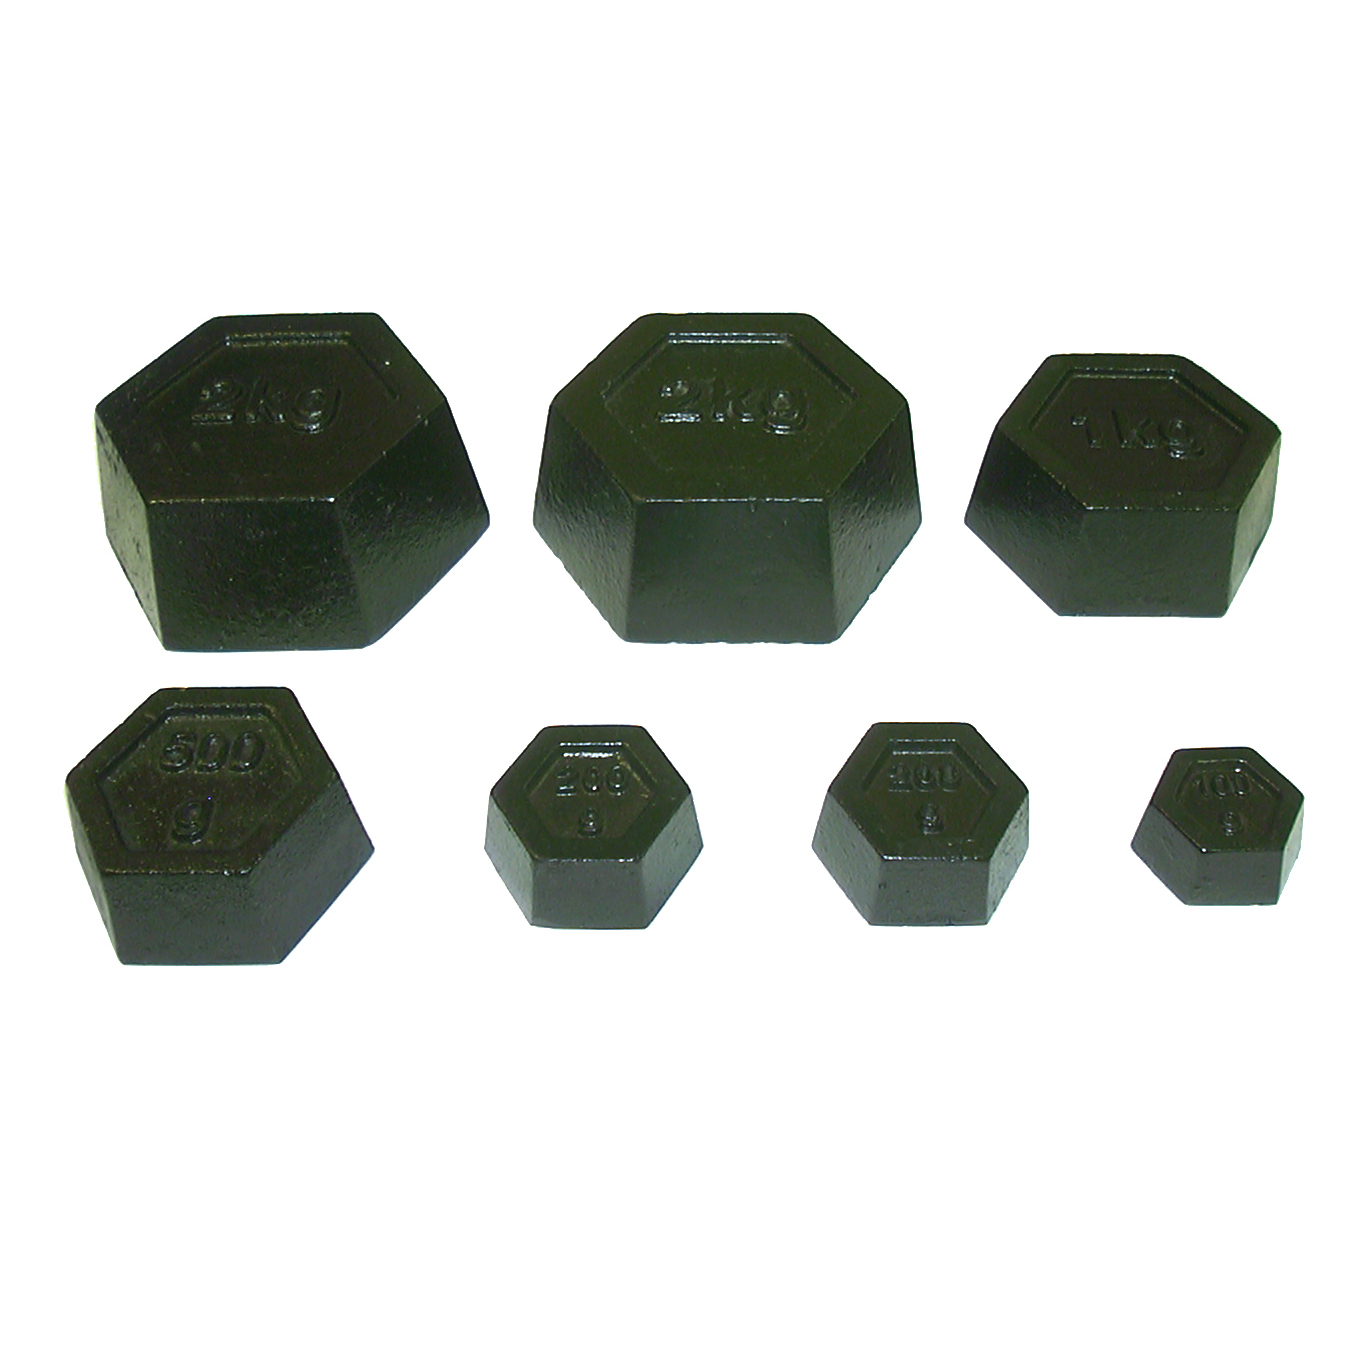 DISCOUNT PREMIER QUALITY METRIC HEXAGONAL CALIBRATION WEIGHT SET